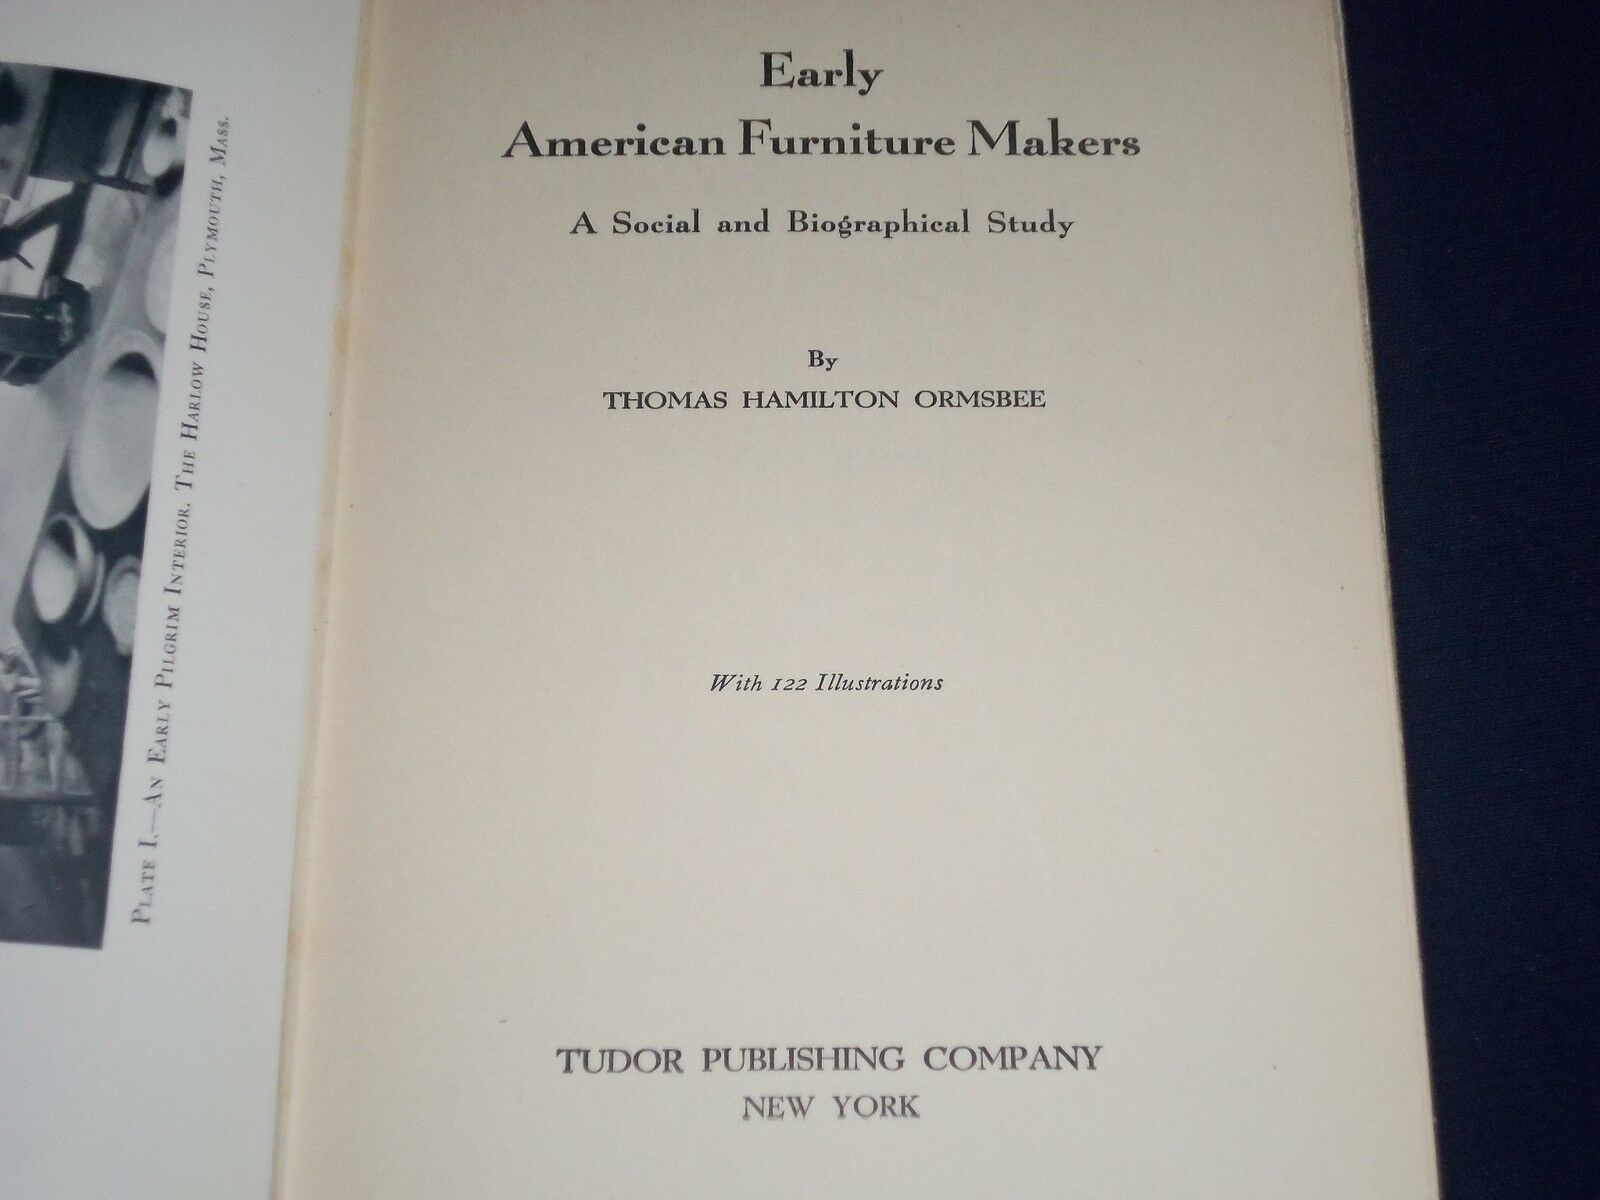 1935 EARLY AMERICAN FURNITURE MAKERS BOOK BY THOMAS ORMSBEE   PHOTOS   KD  1363